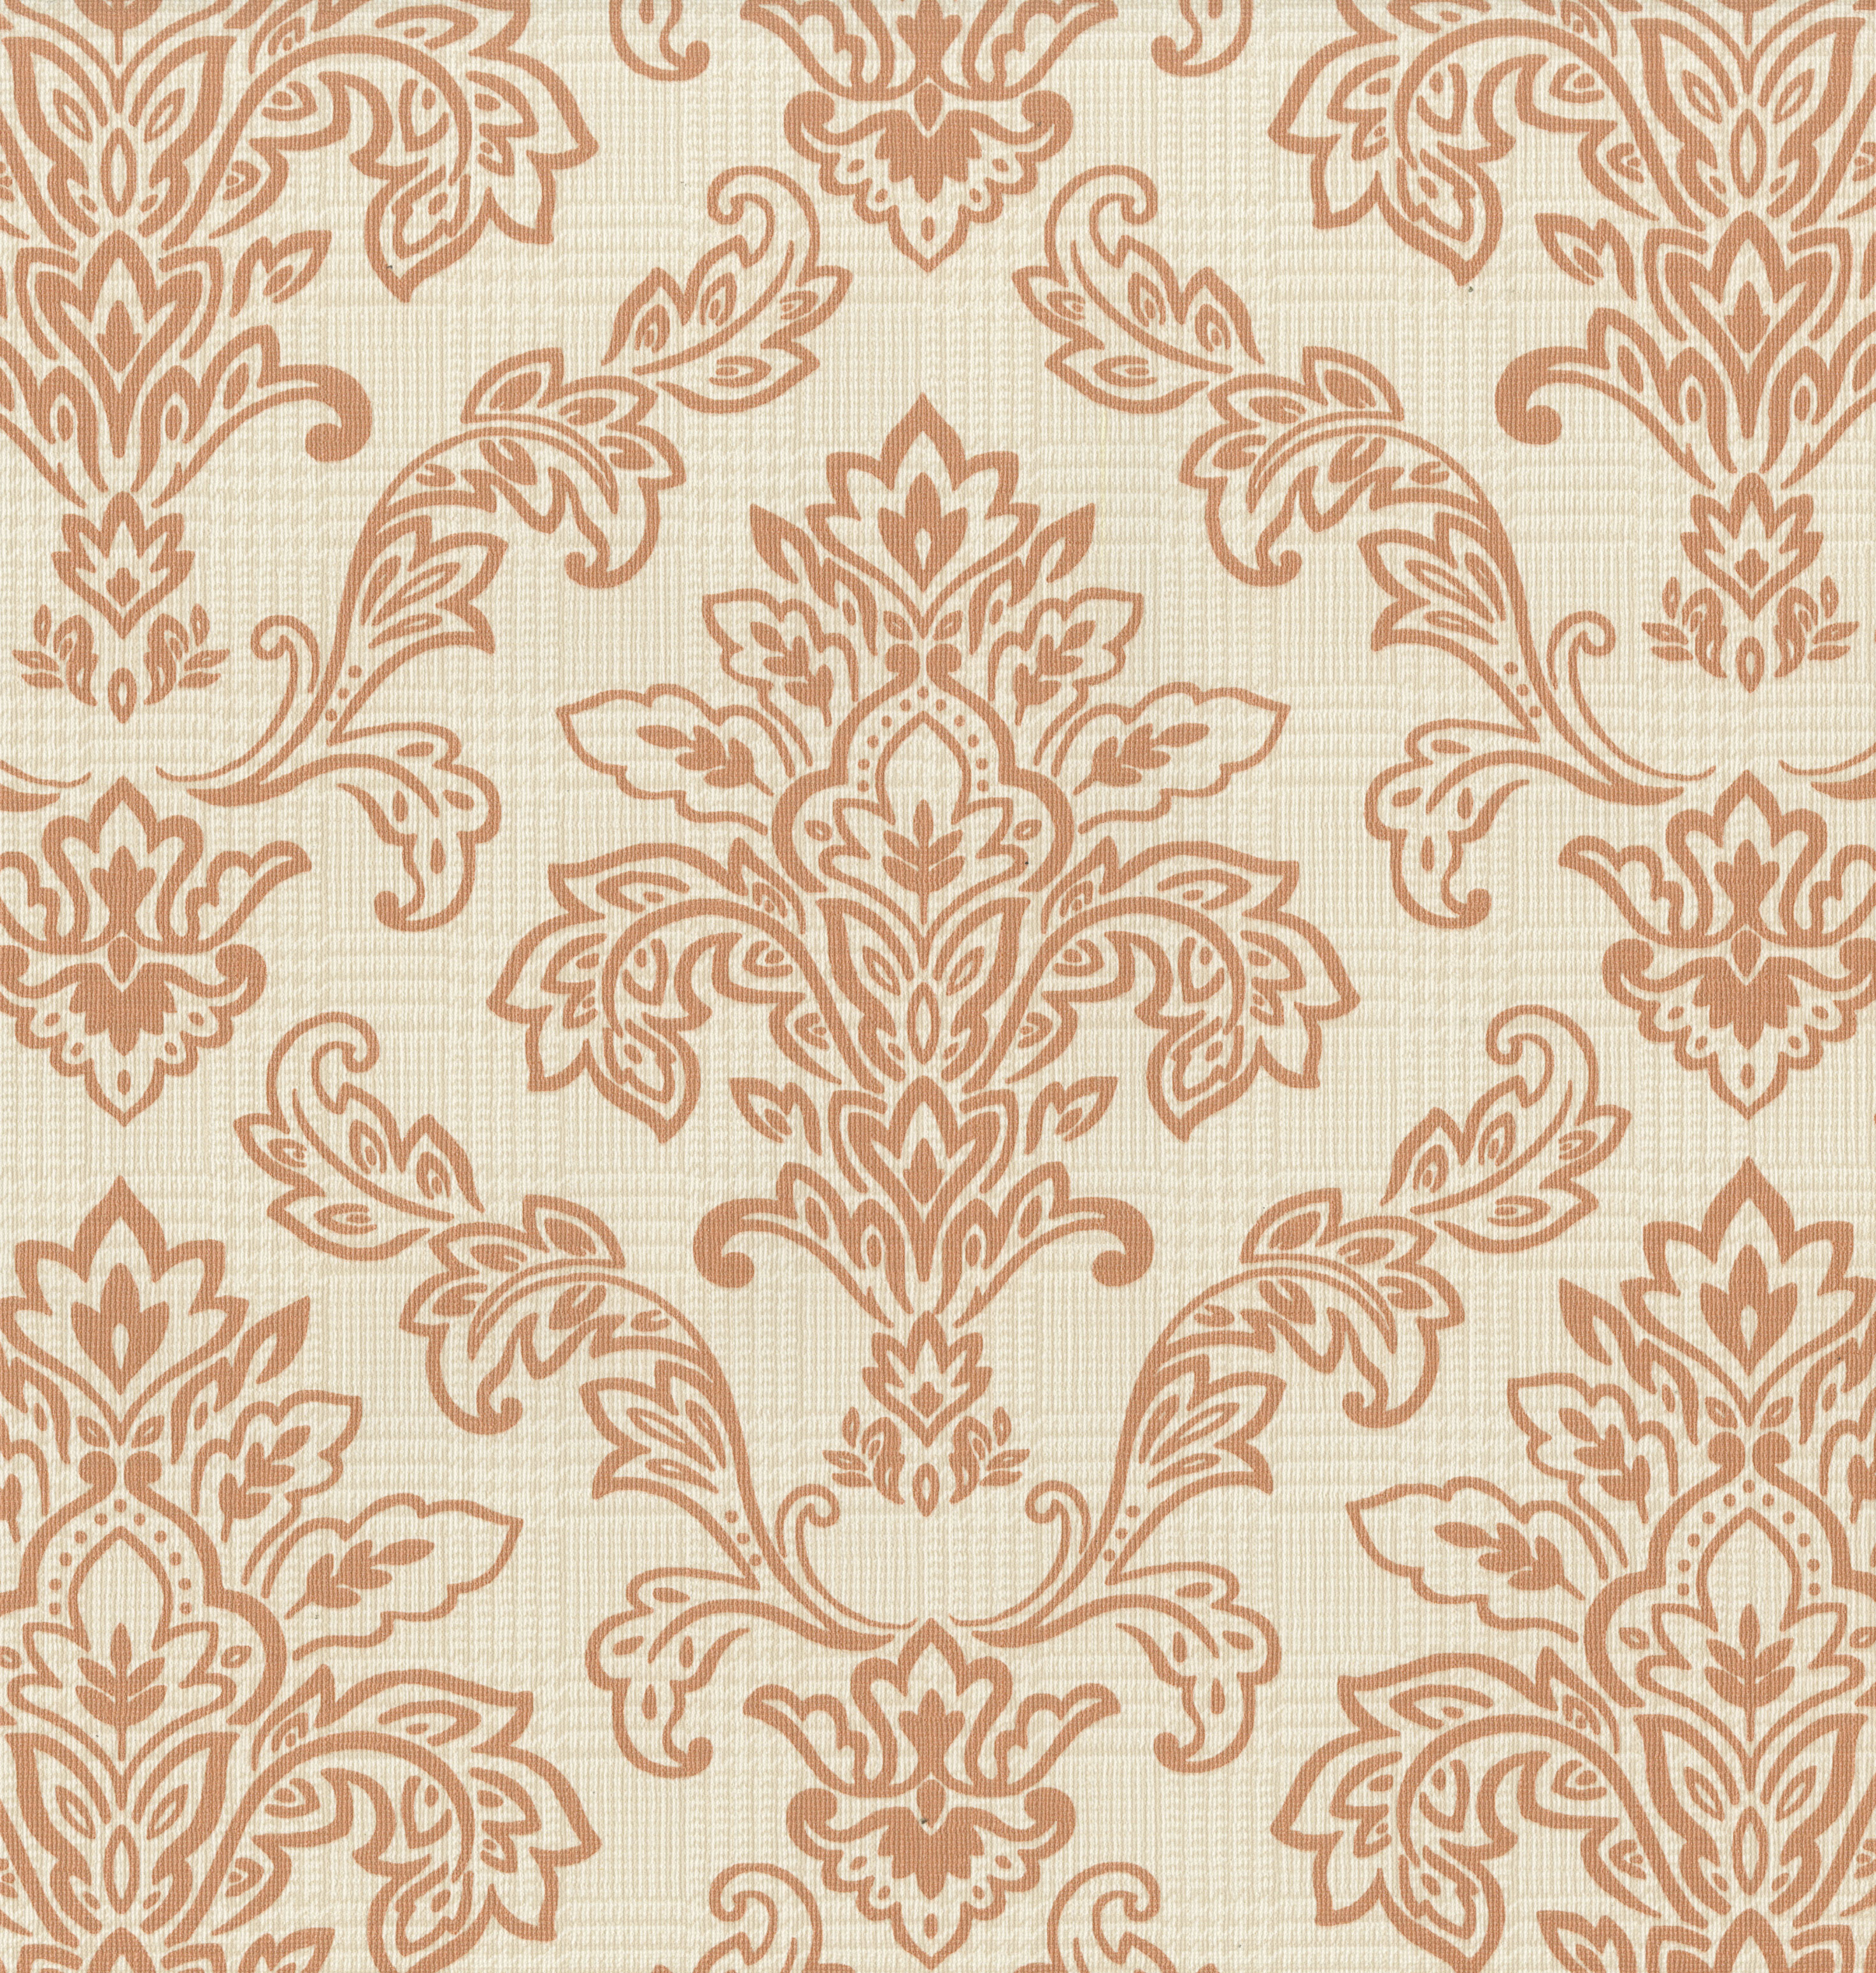 Stunning Damask Wallpaper Red Orange Silver Black Living Room Feature Wall Ebay